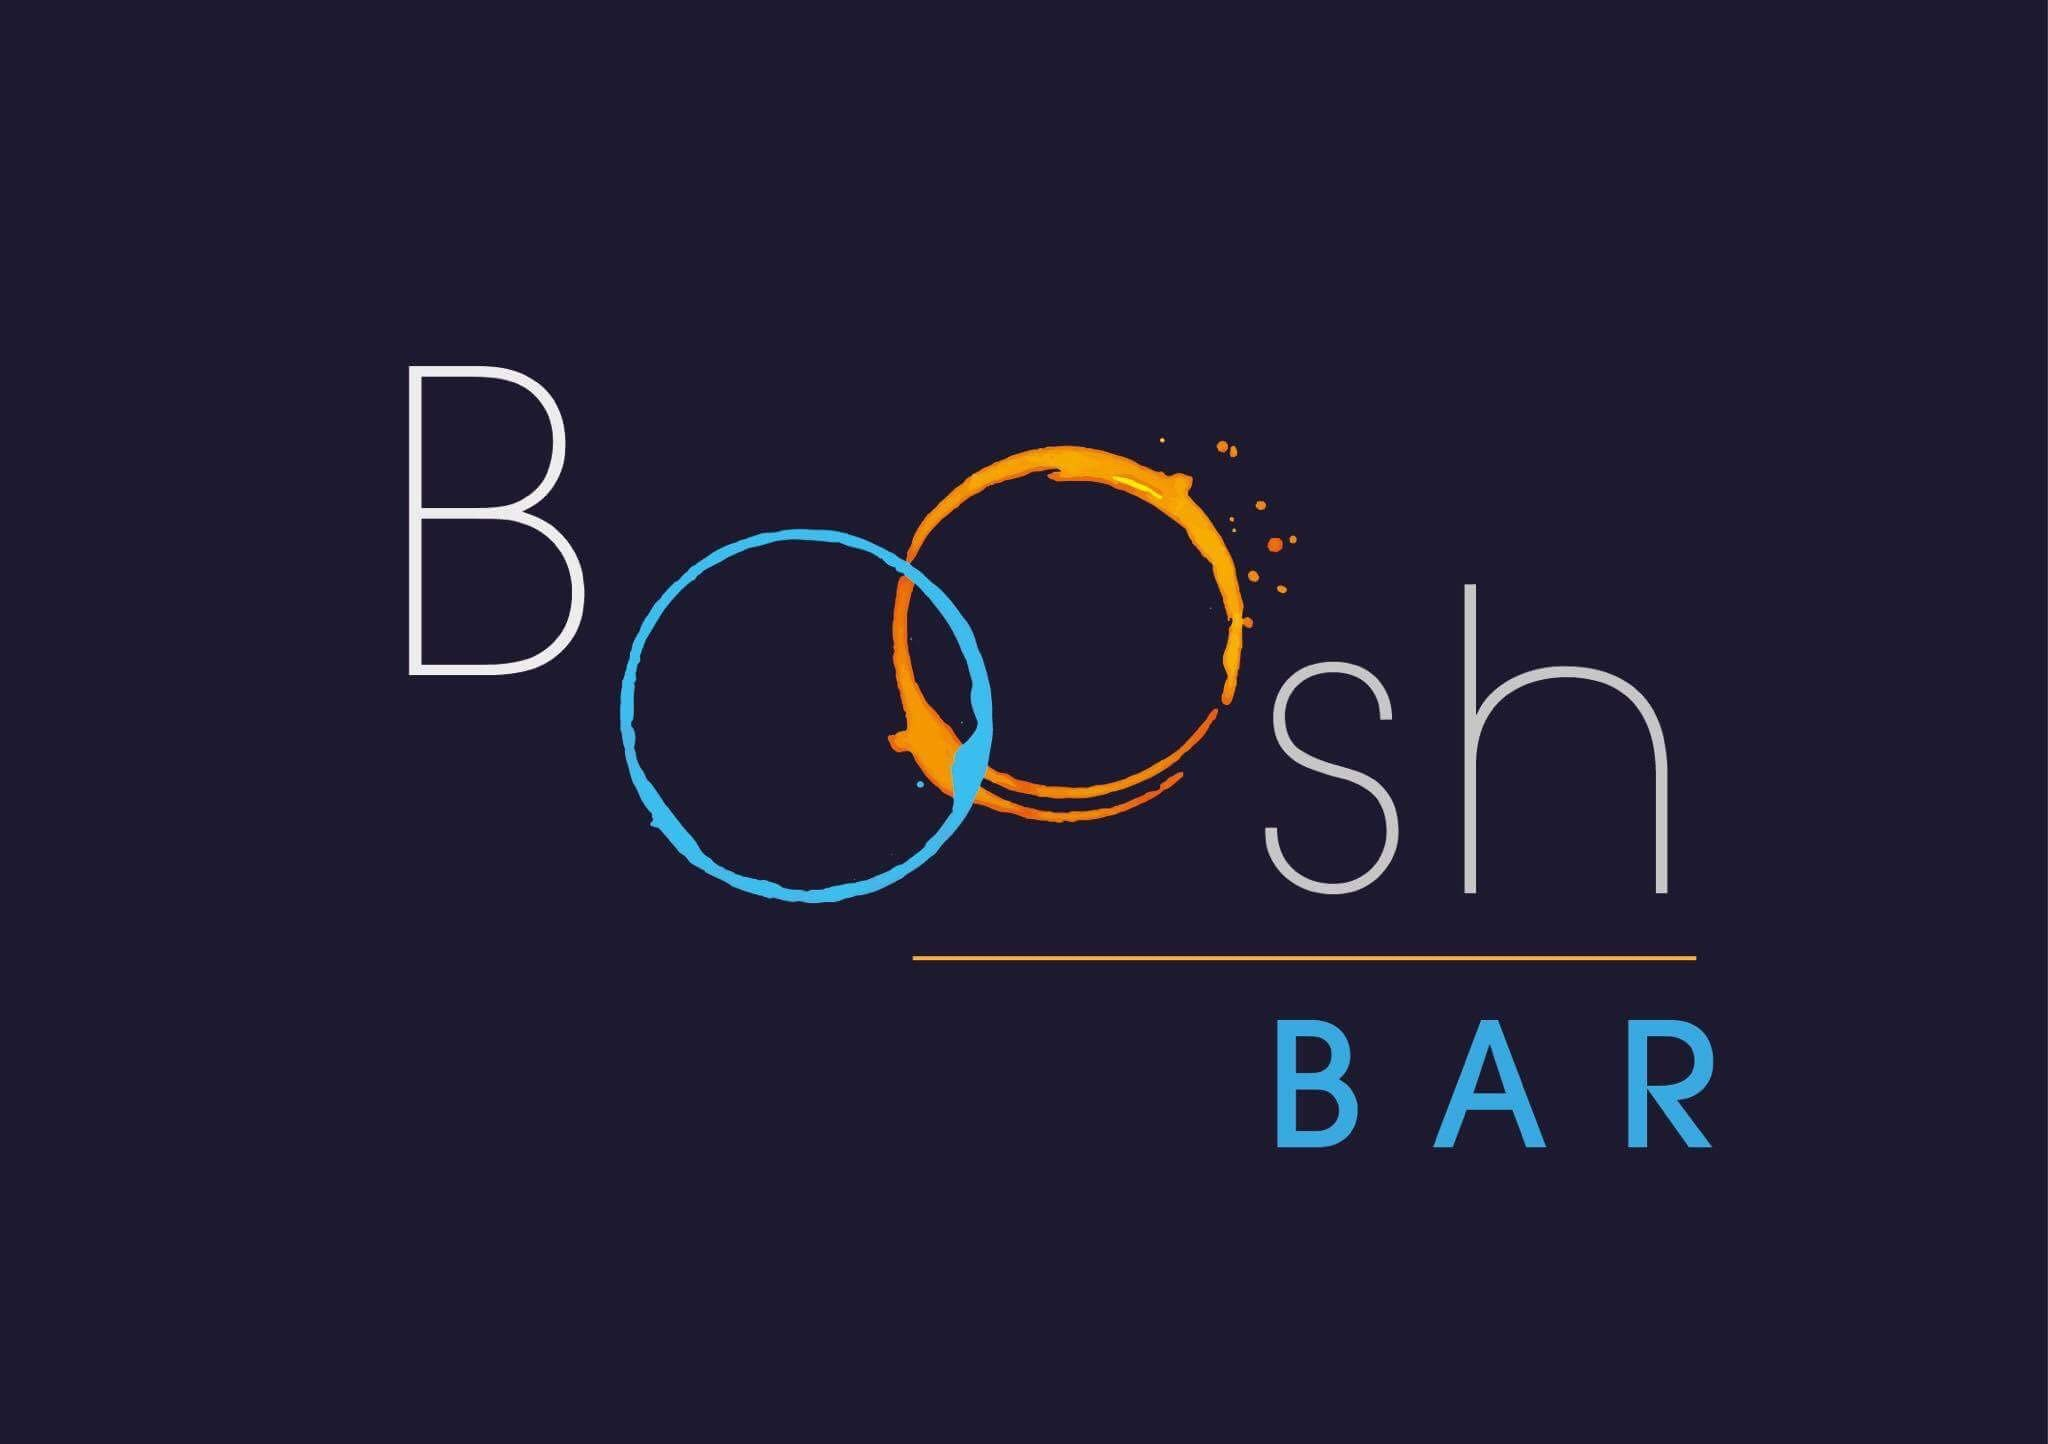 Boosh Bar